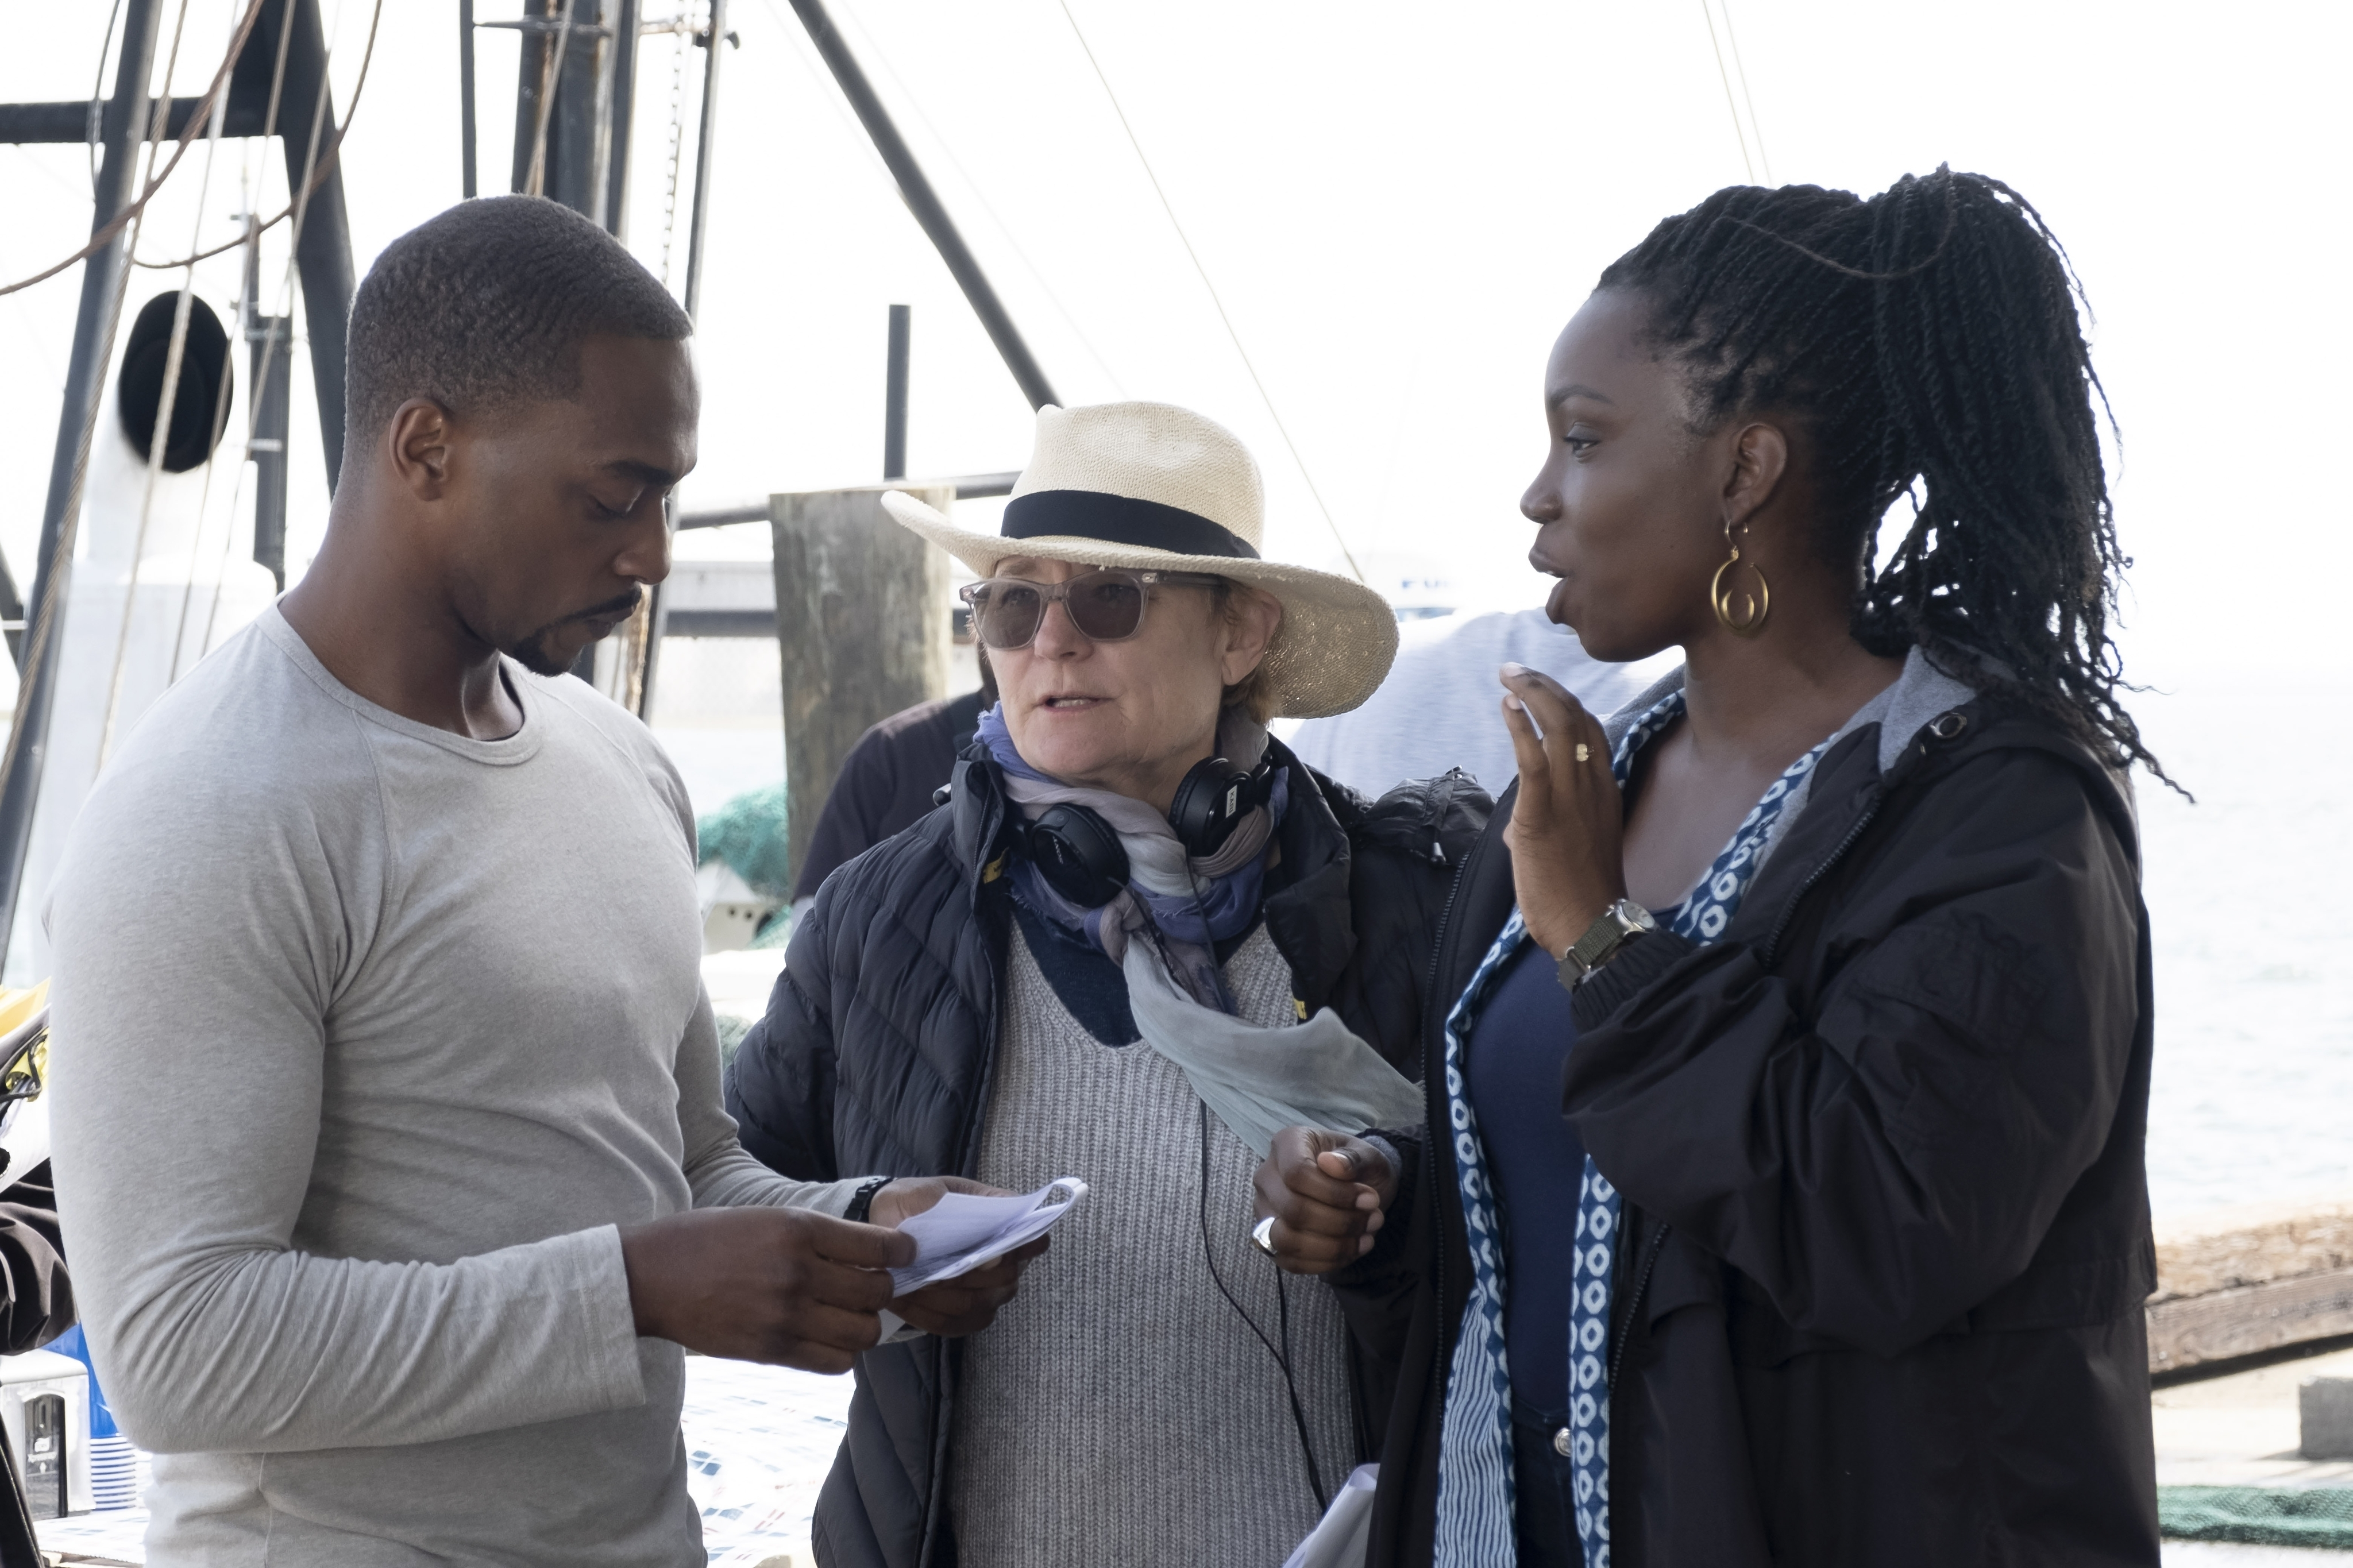 Director Kari Scogland stands between Anthony Mackie and Adepero Oduye on the set of Falcon and the Winter Soldier